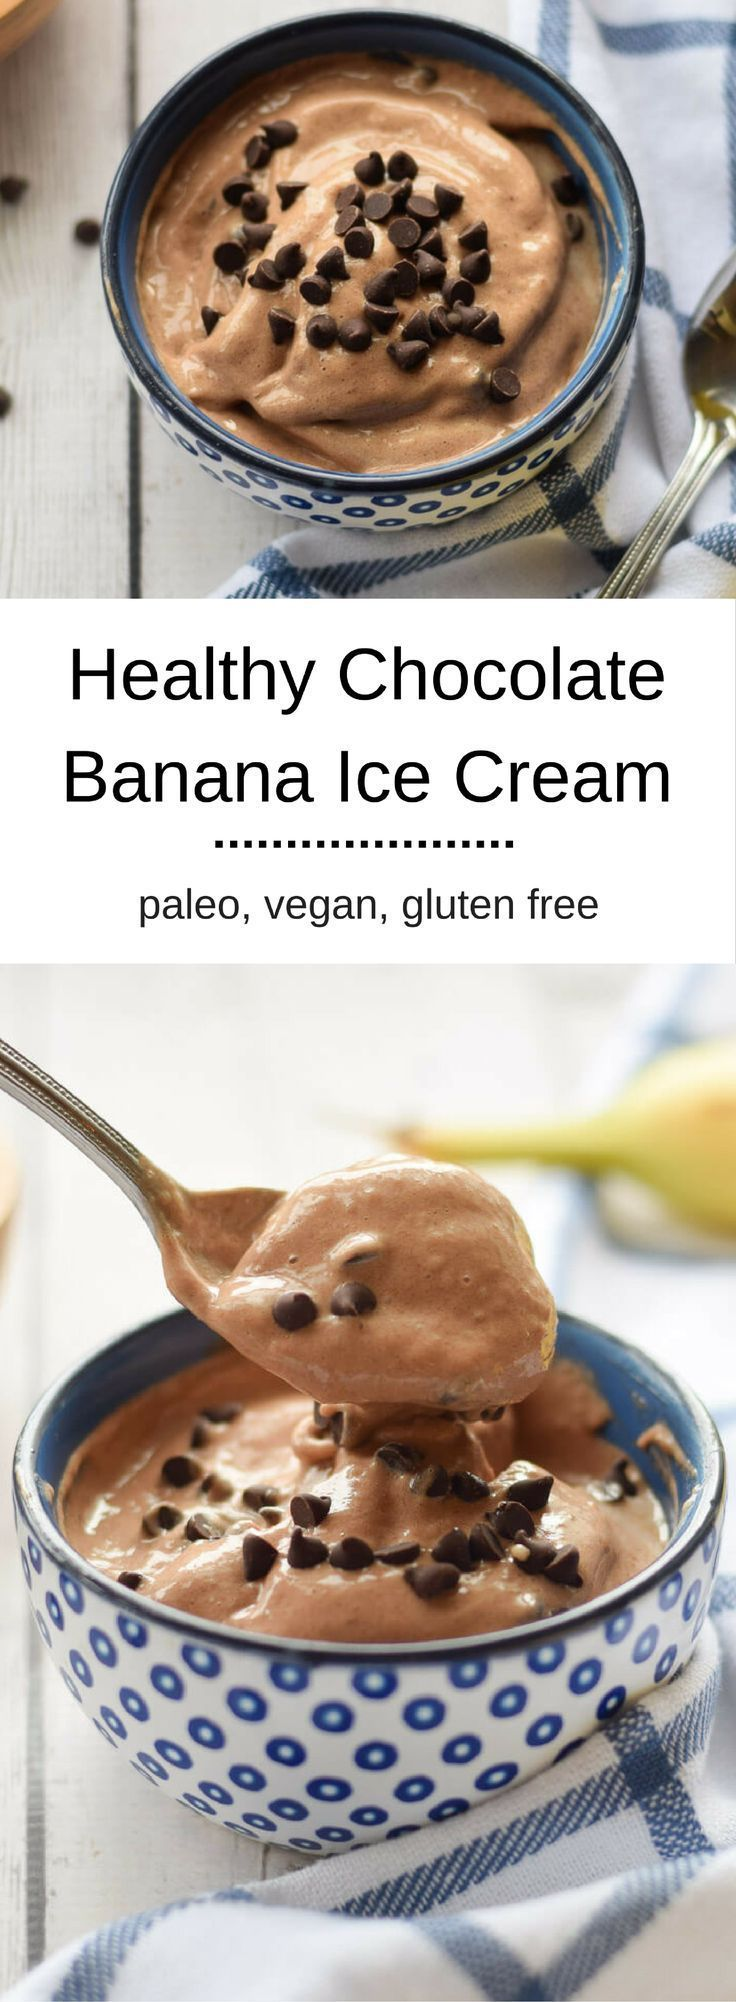 Healthy Chocolate Banana Ice Cream - satisfy that sweet tooth with a healthy treat you won't regret in the morning.   Made with only three ingredients!  {gluten free, whole30, paleo, vegan}